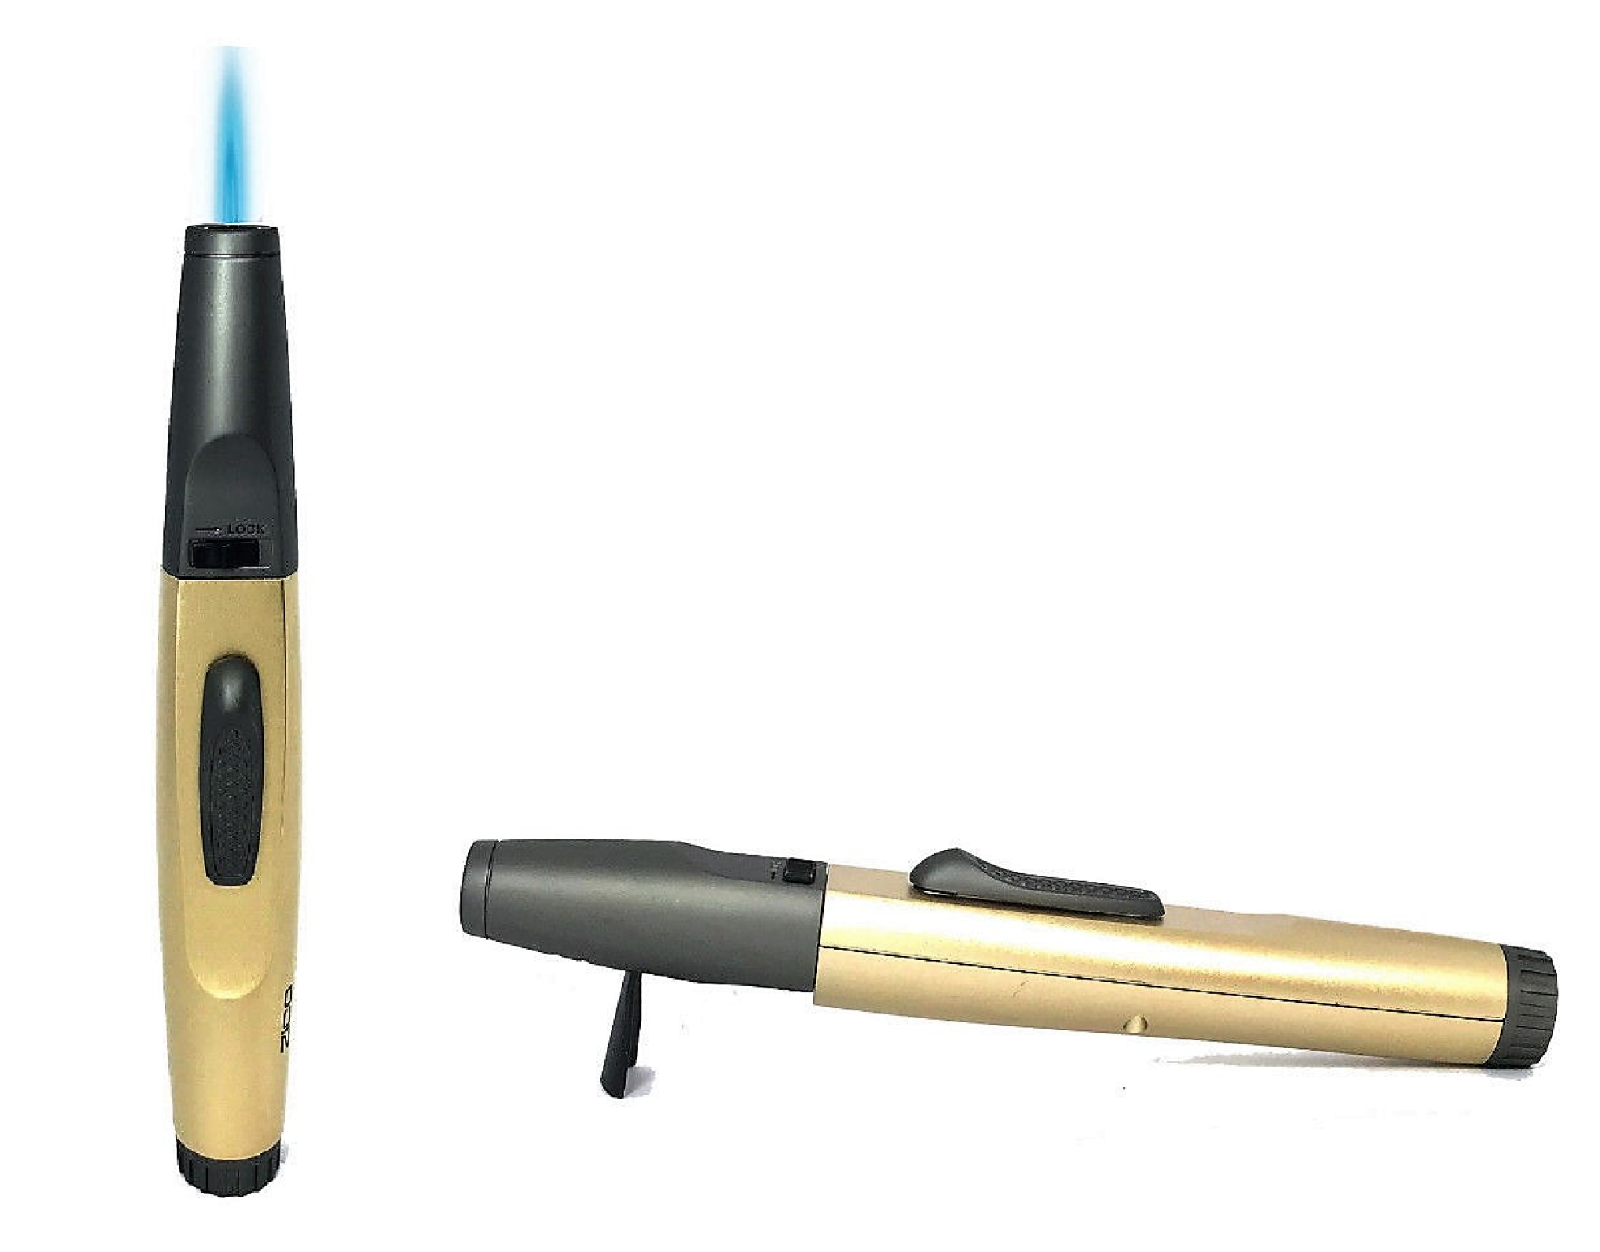 Zico MT-36 Pencil Torch - Cheeky Ninjas